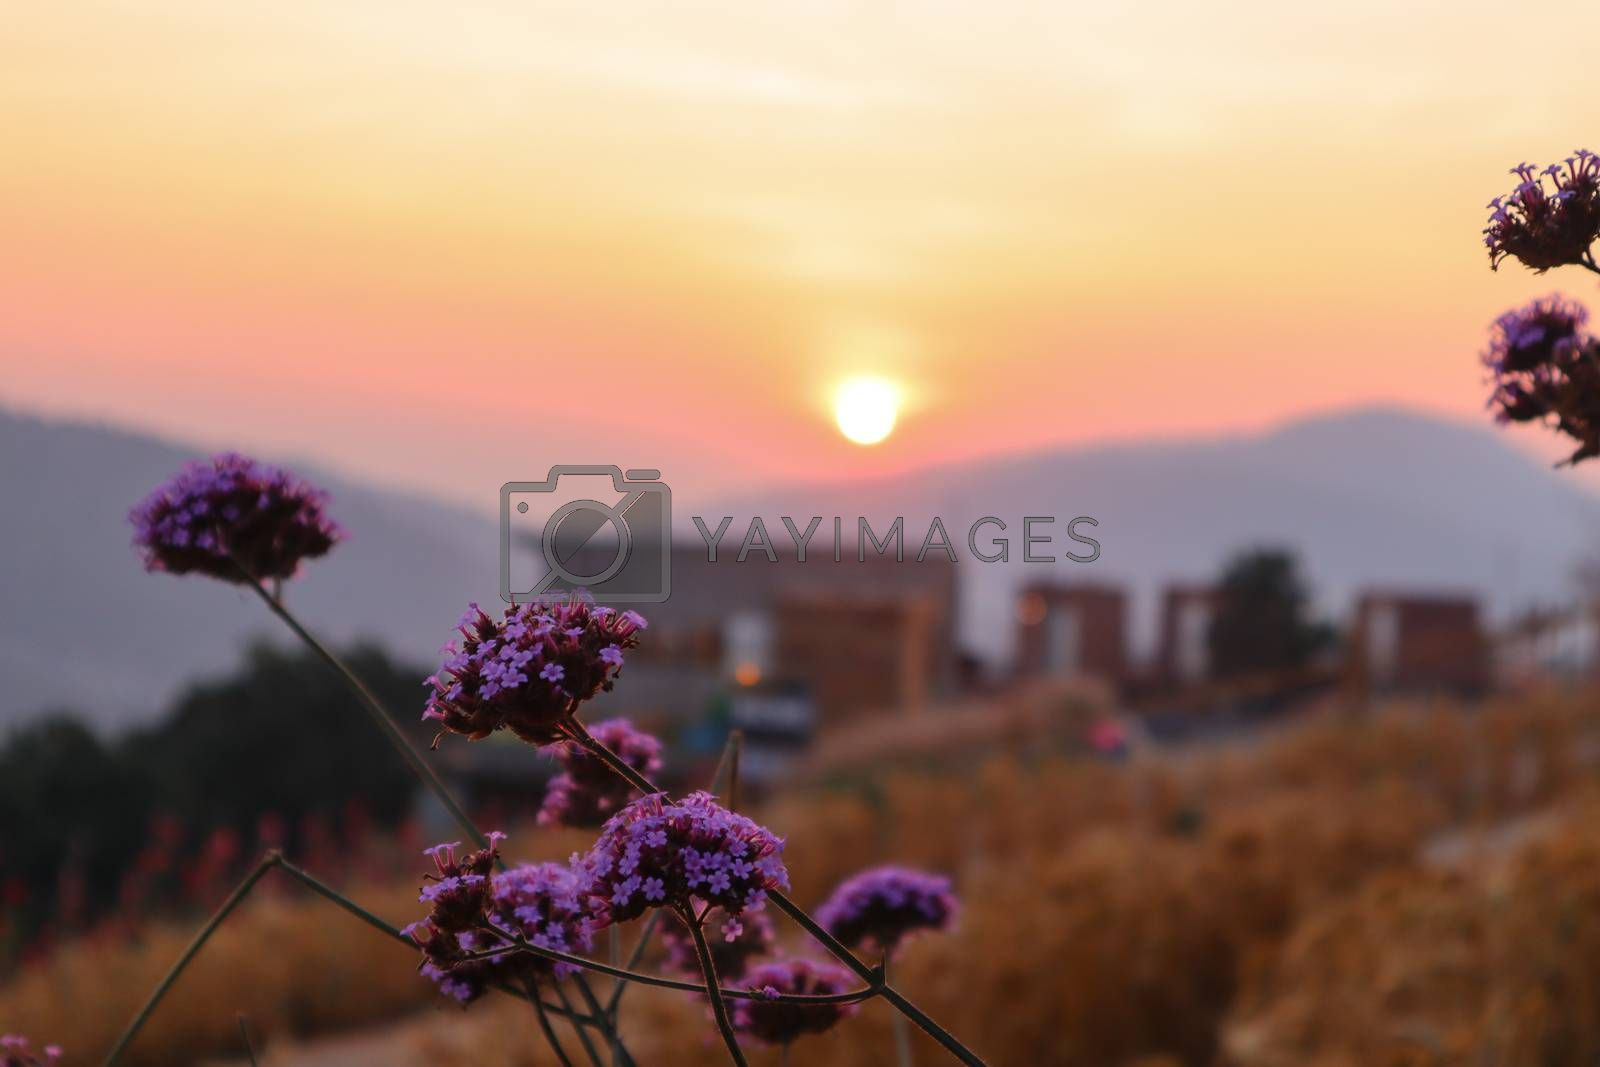 The mountain sunset in a thai village near mountains in Chiang Mai, Thailand. The mountain scenery view